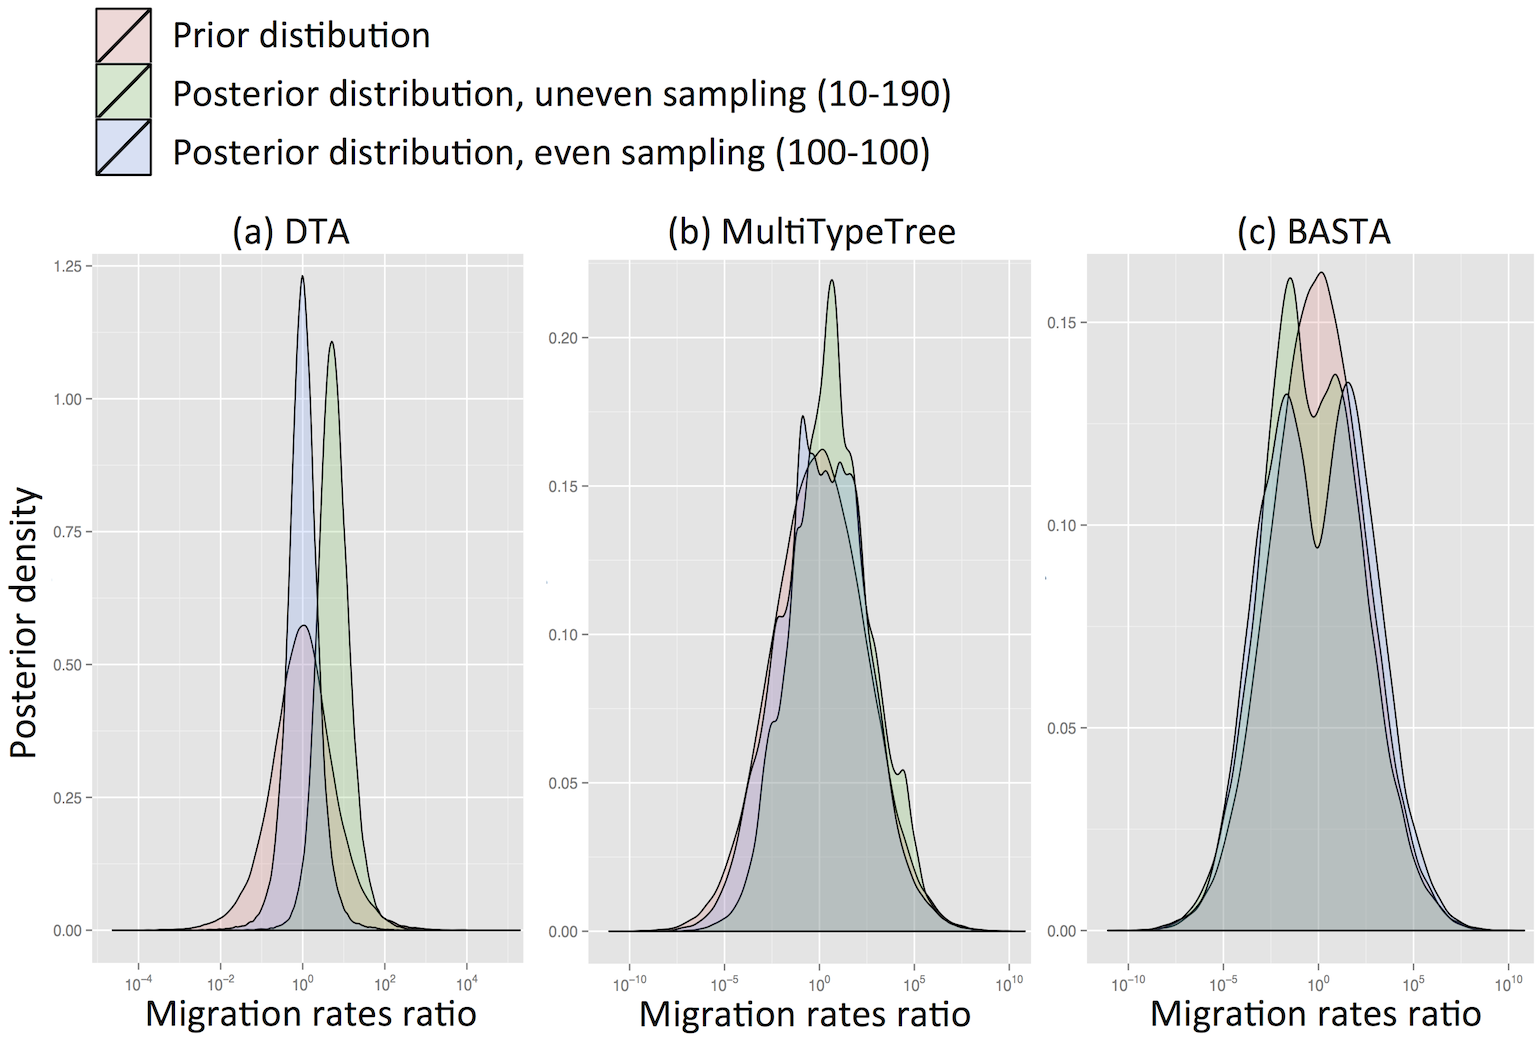 DTA is inherently biased by the sampling process.